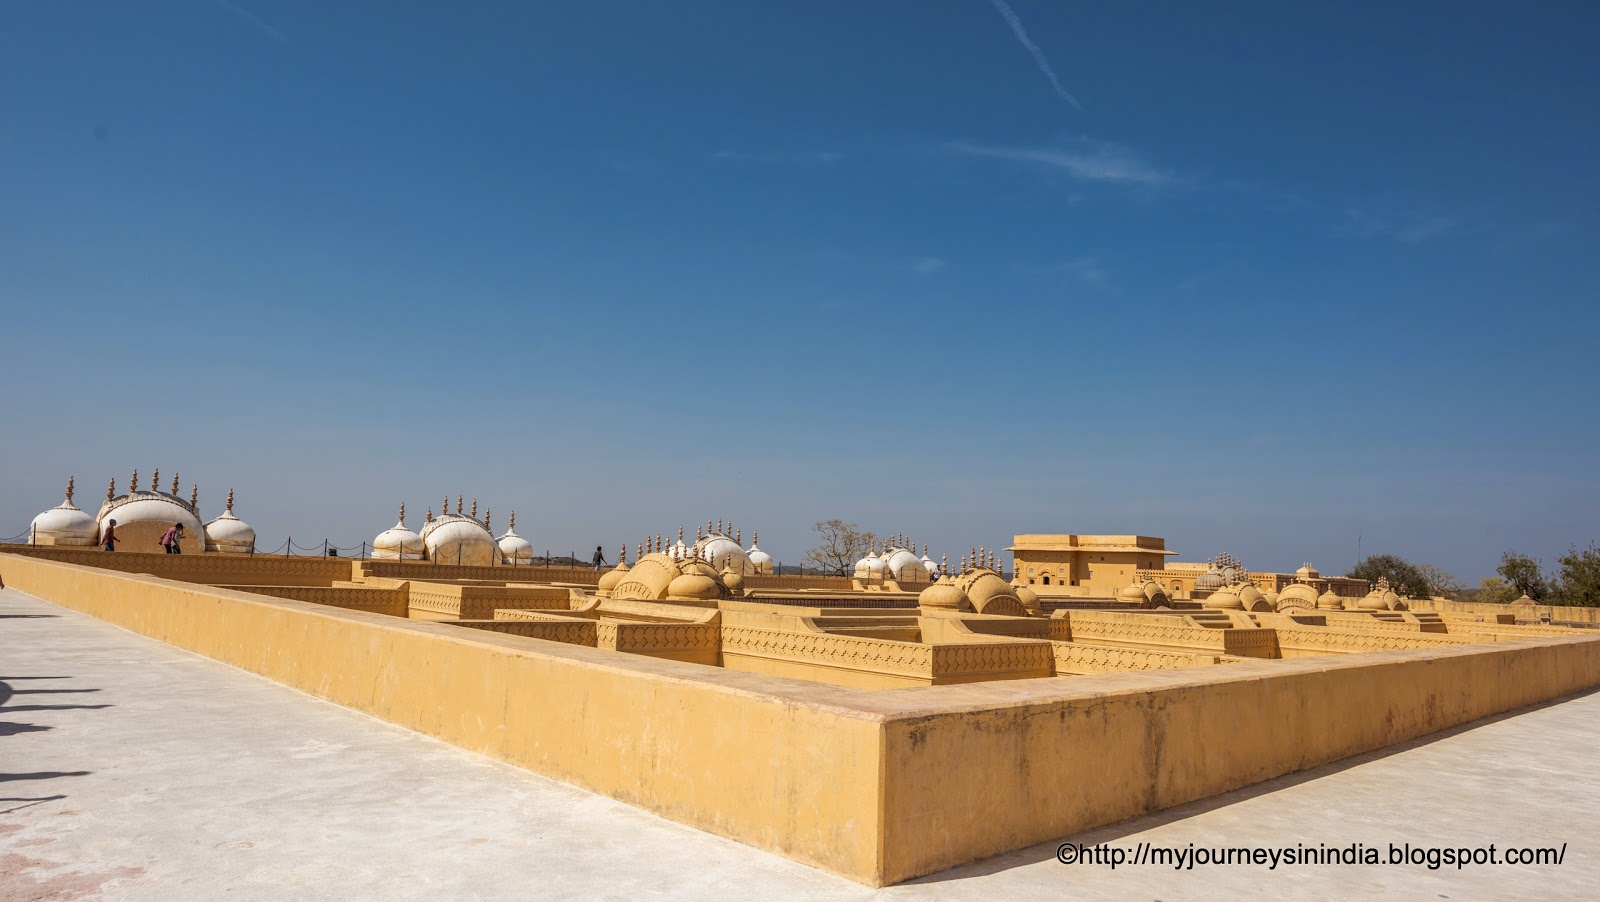 View of Domes in Nahargarh Fort Jaipur